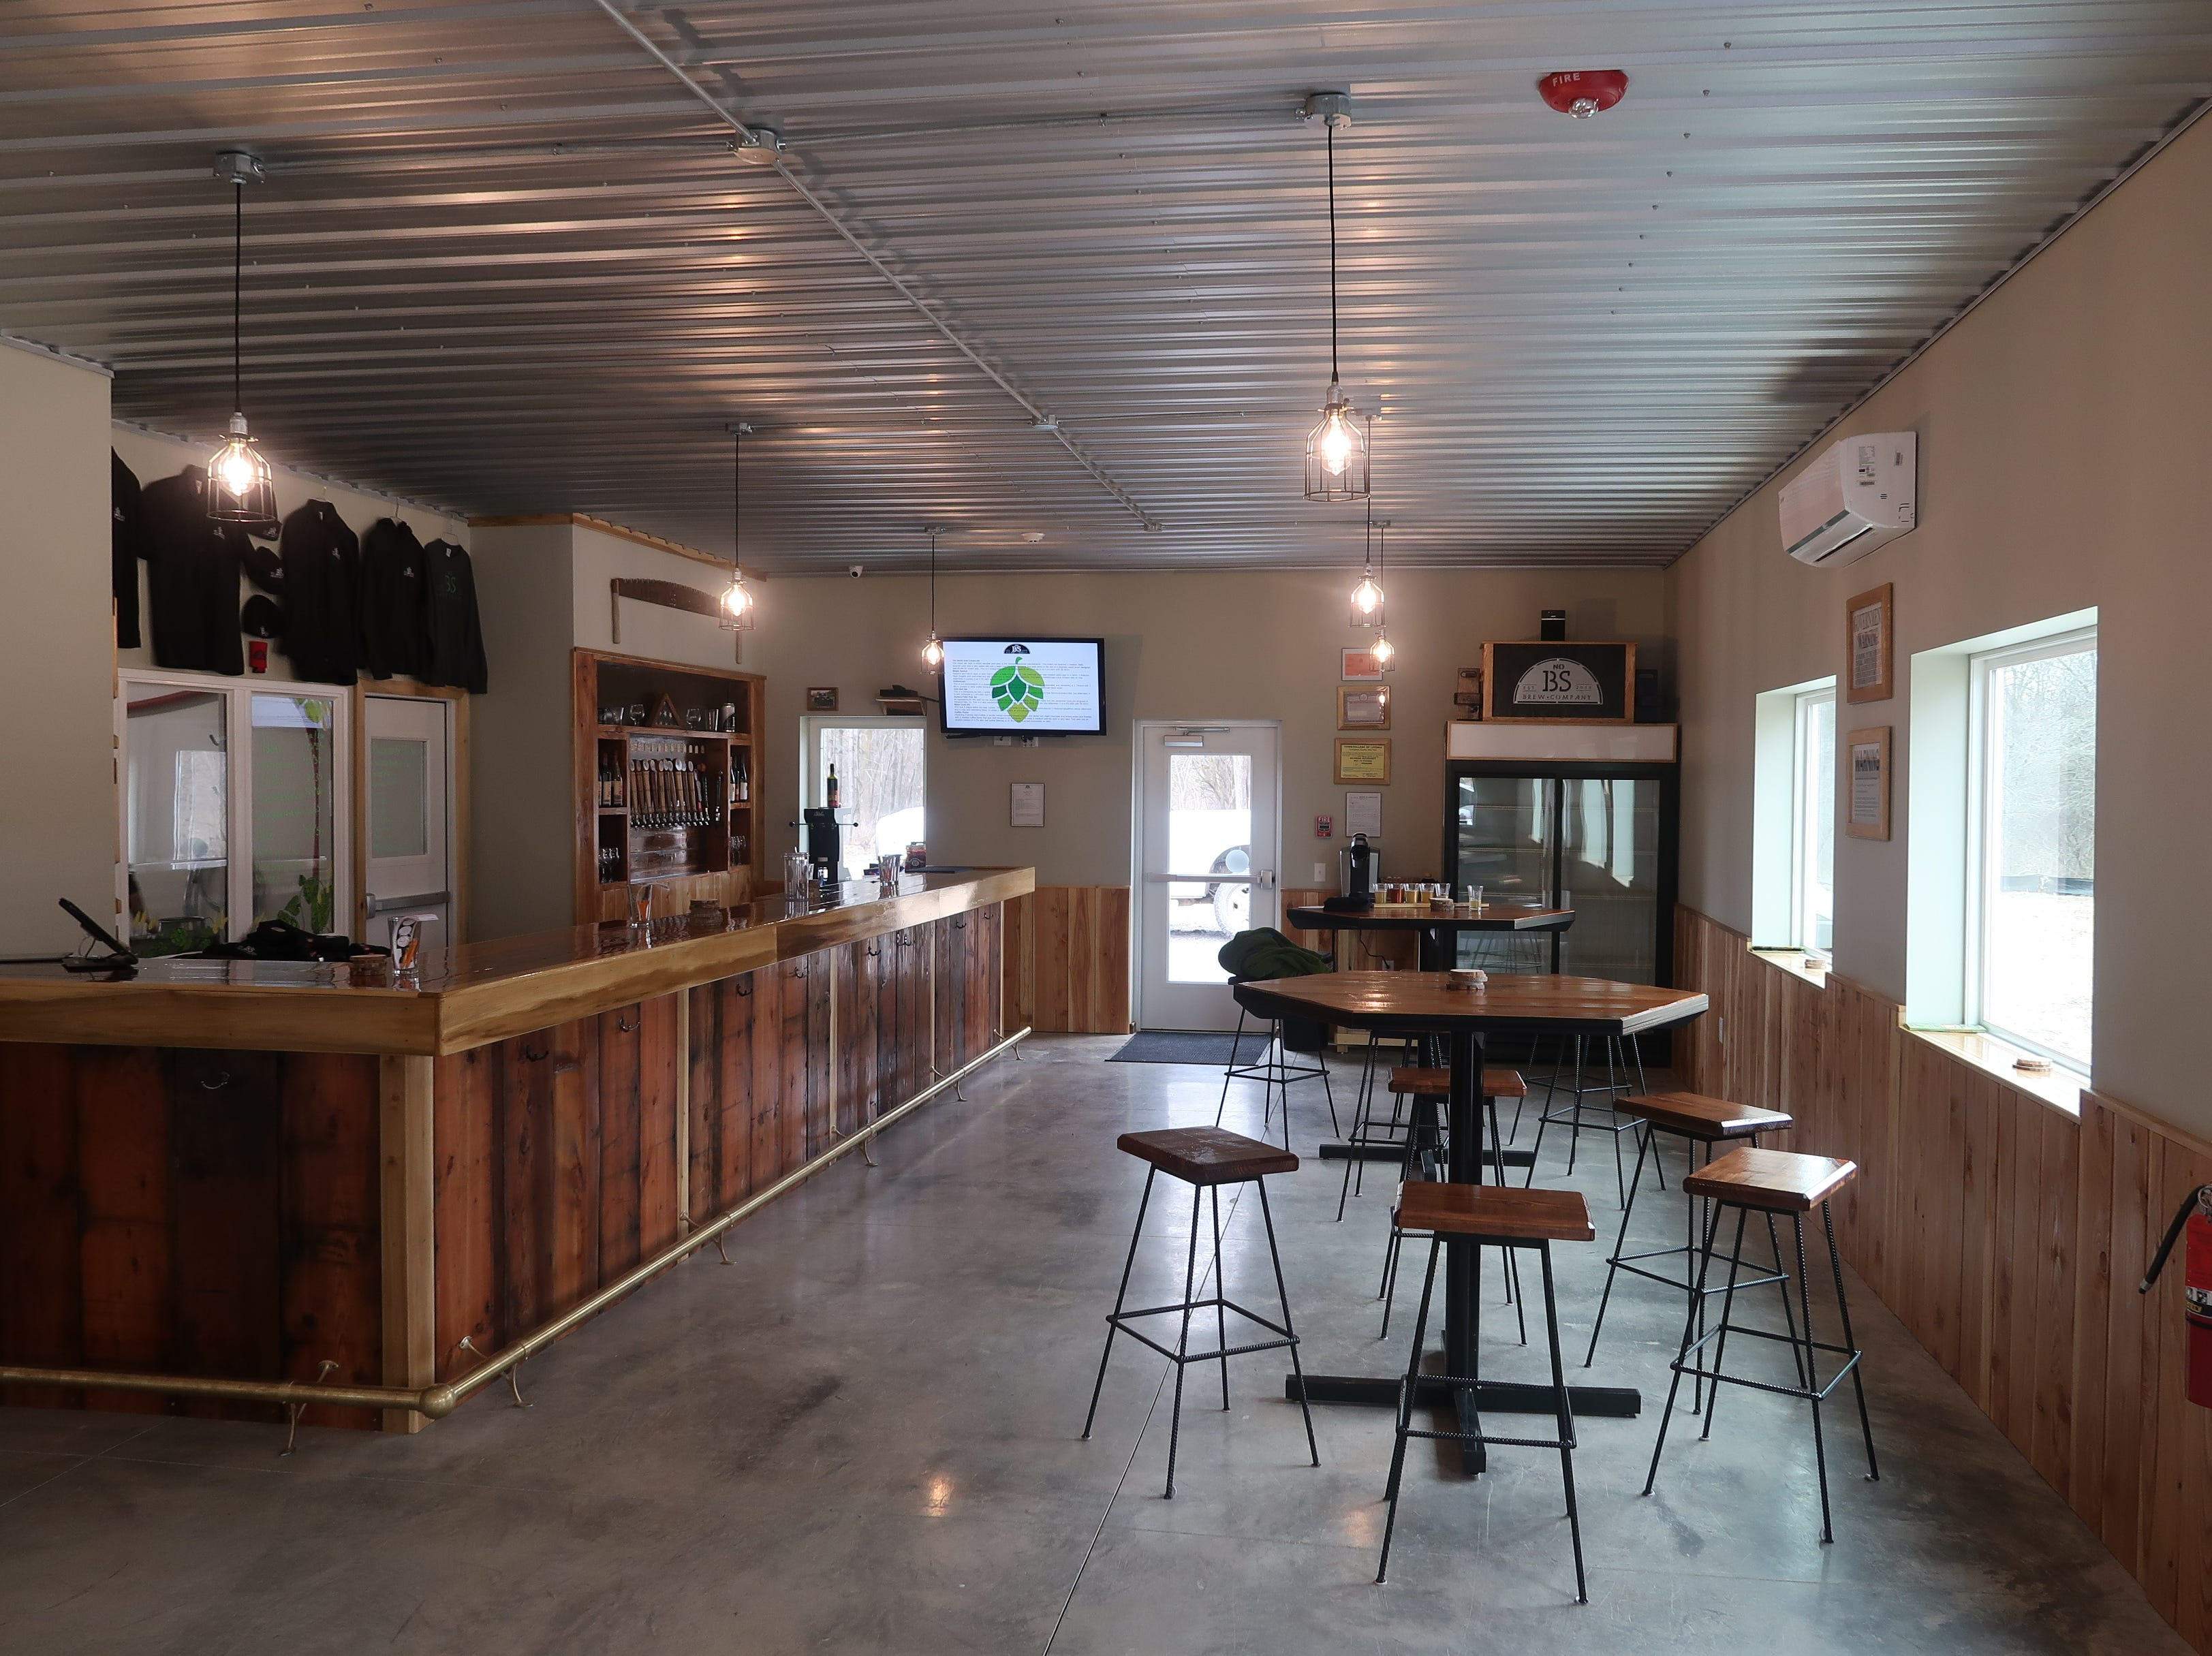 The bar and tasting room at No BS Brewing in Livonia.